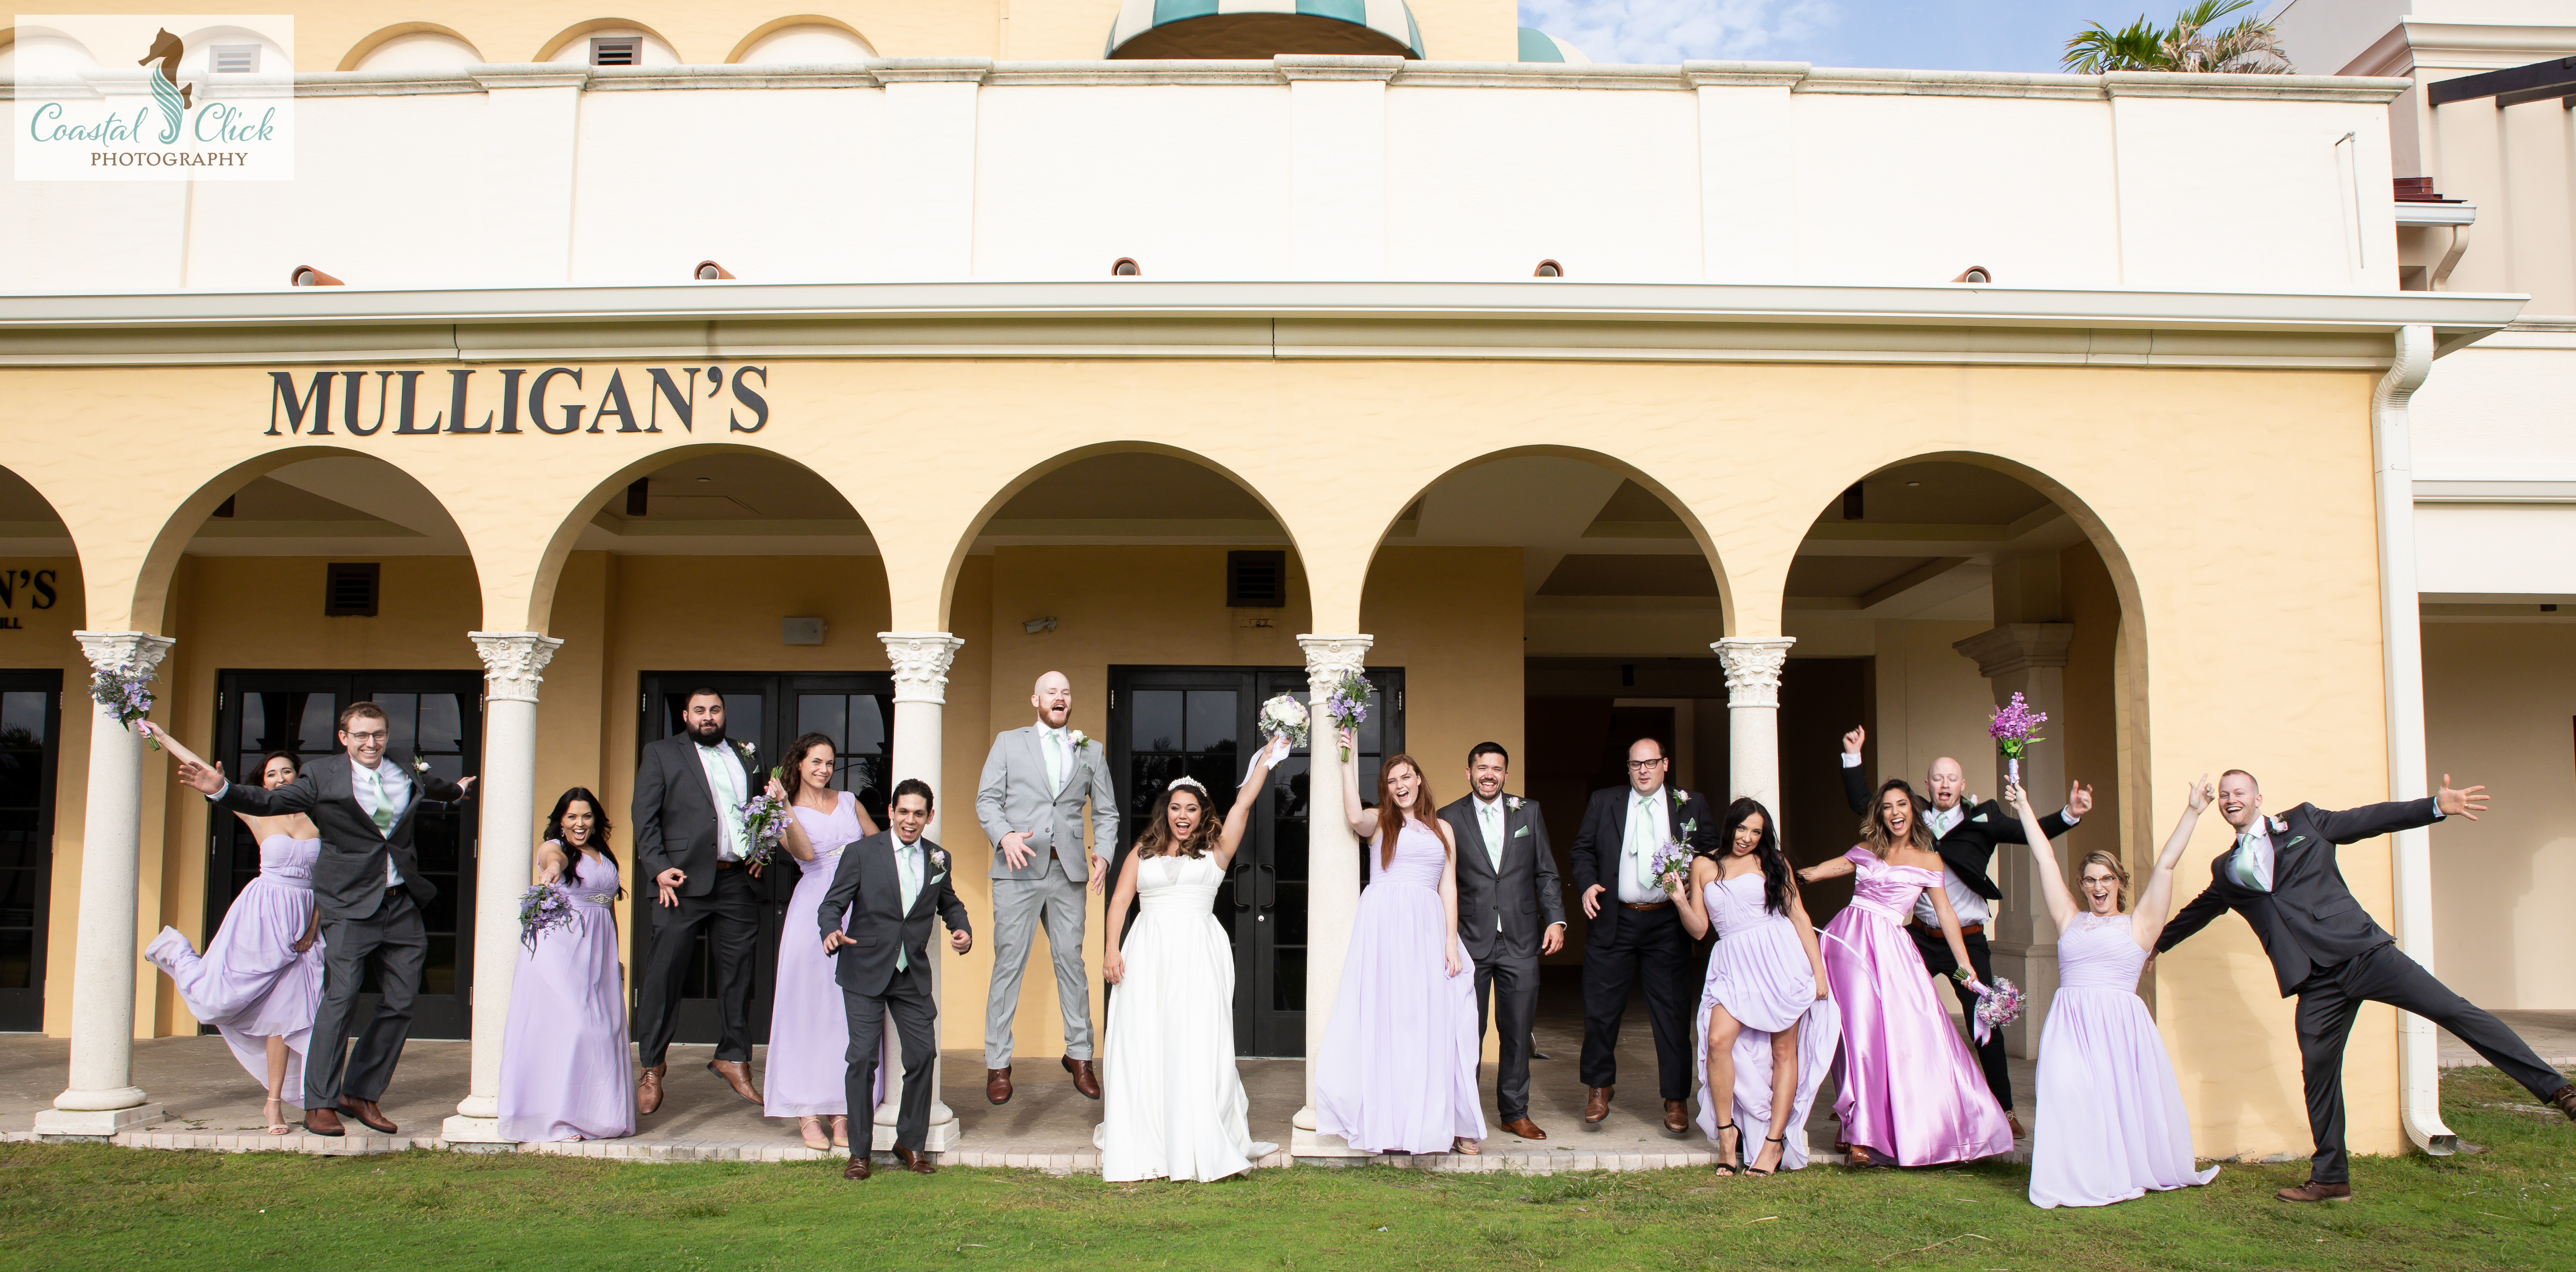 chalmers-wedding-lake-worth-casino-ballroom-coastal-click-photography-0587